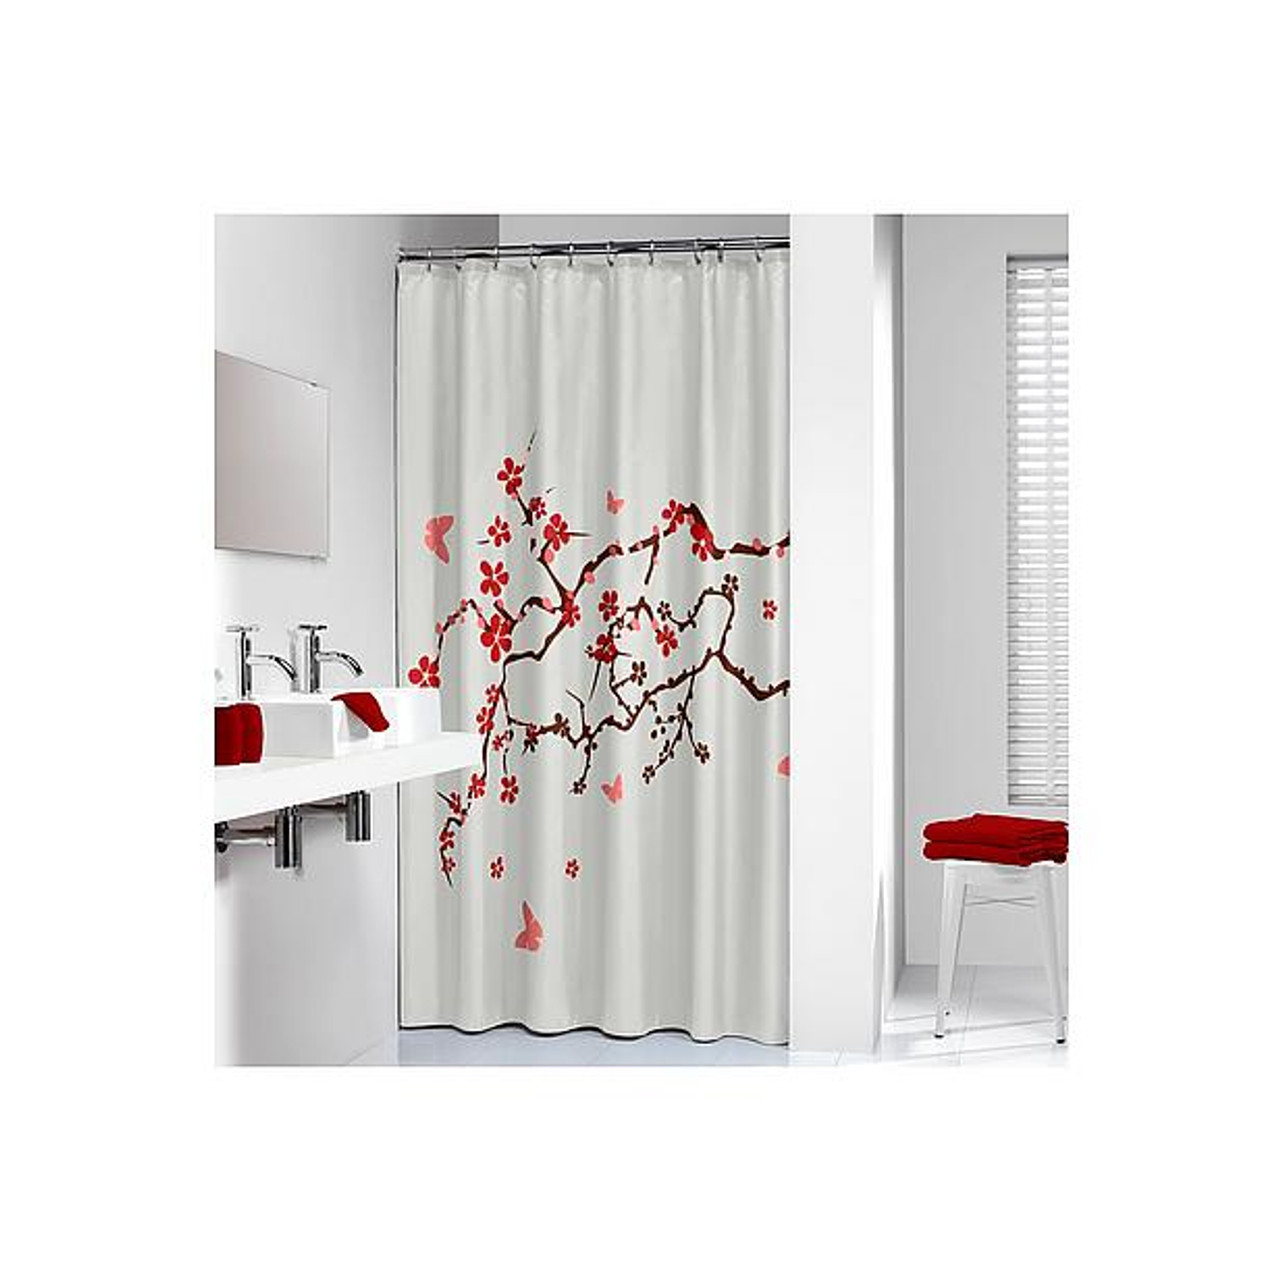 Shower Curtain Sealskin Blossom Print White Fabric